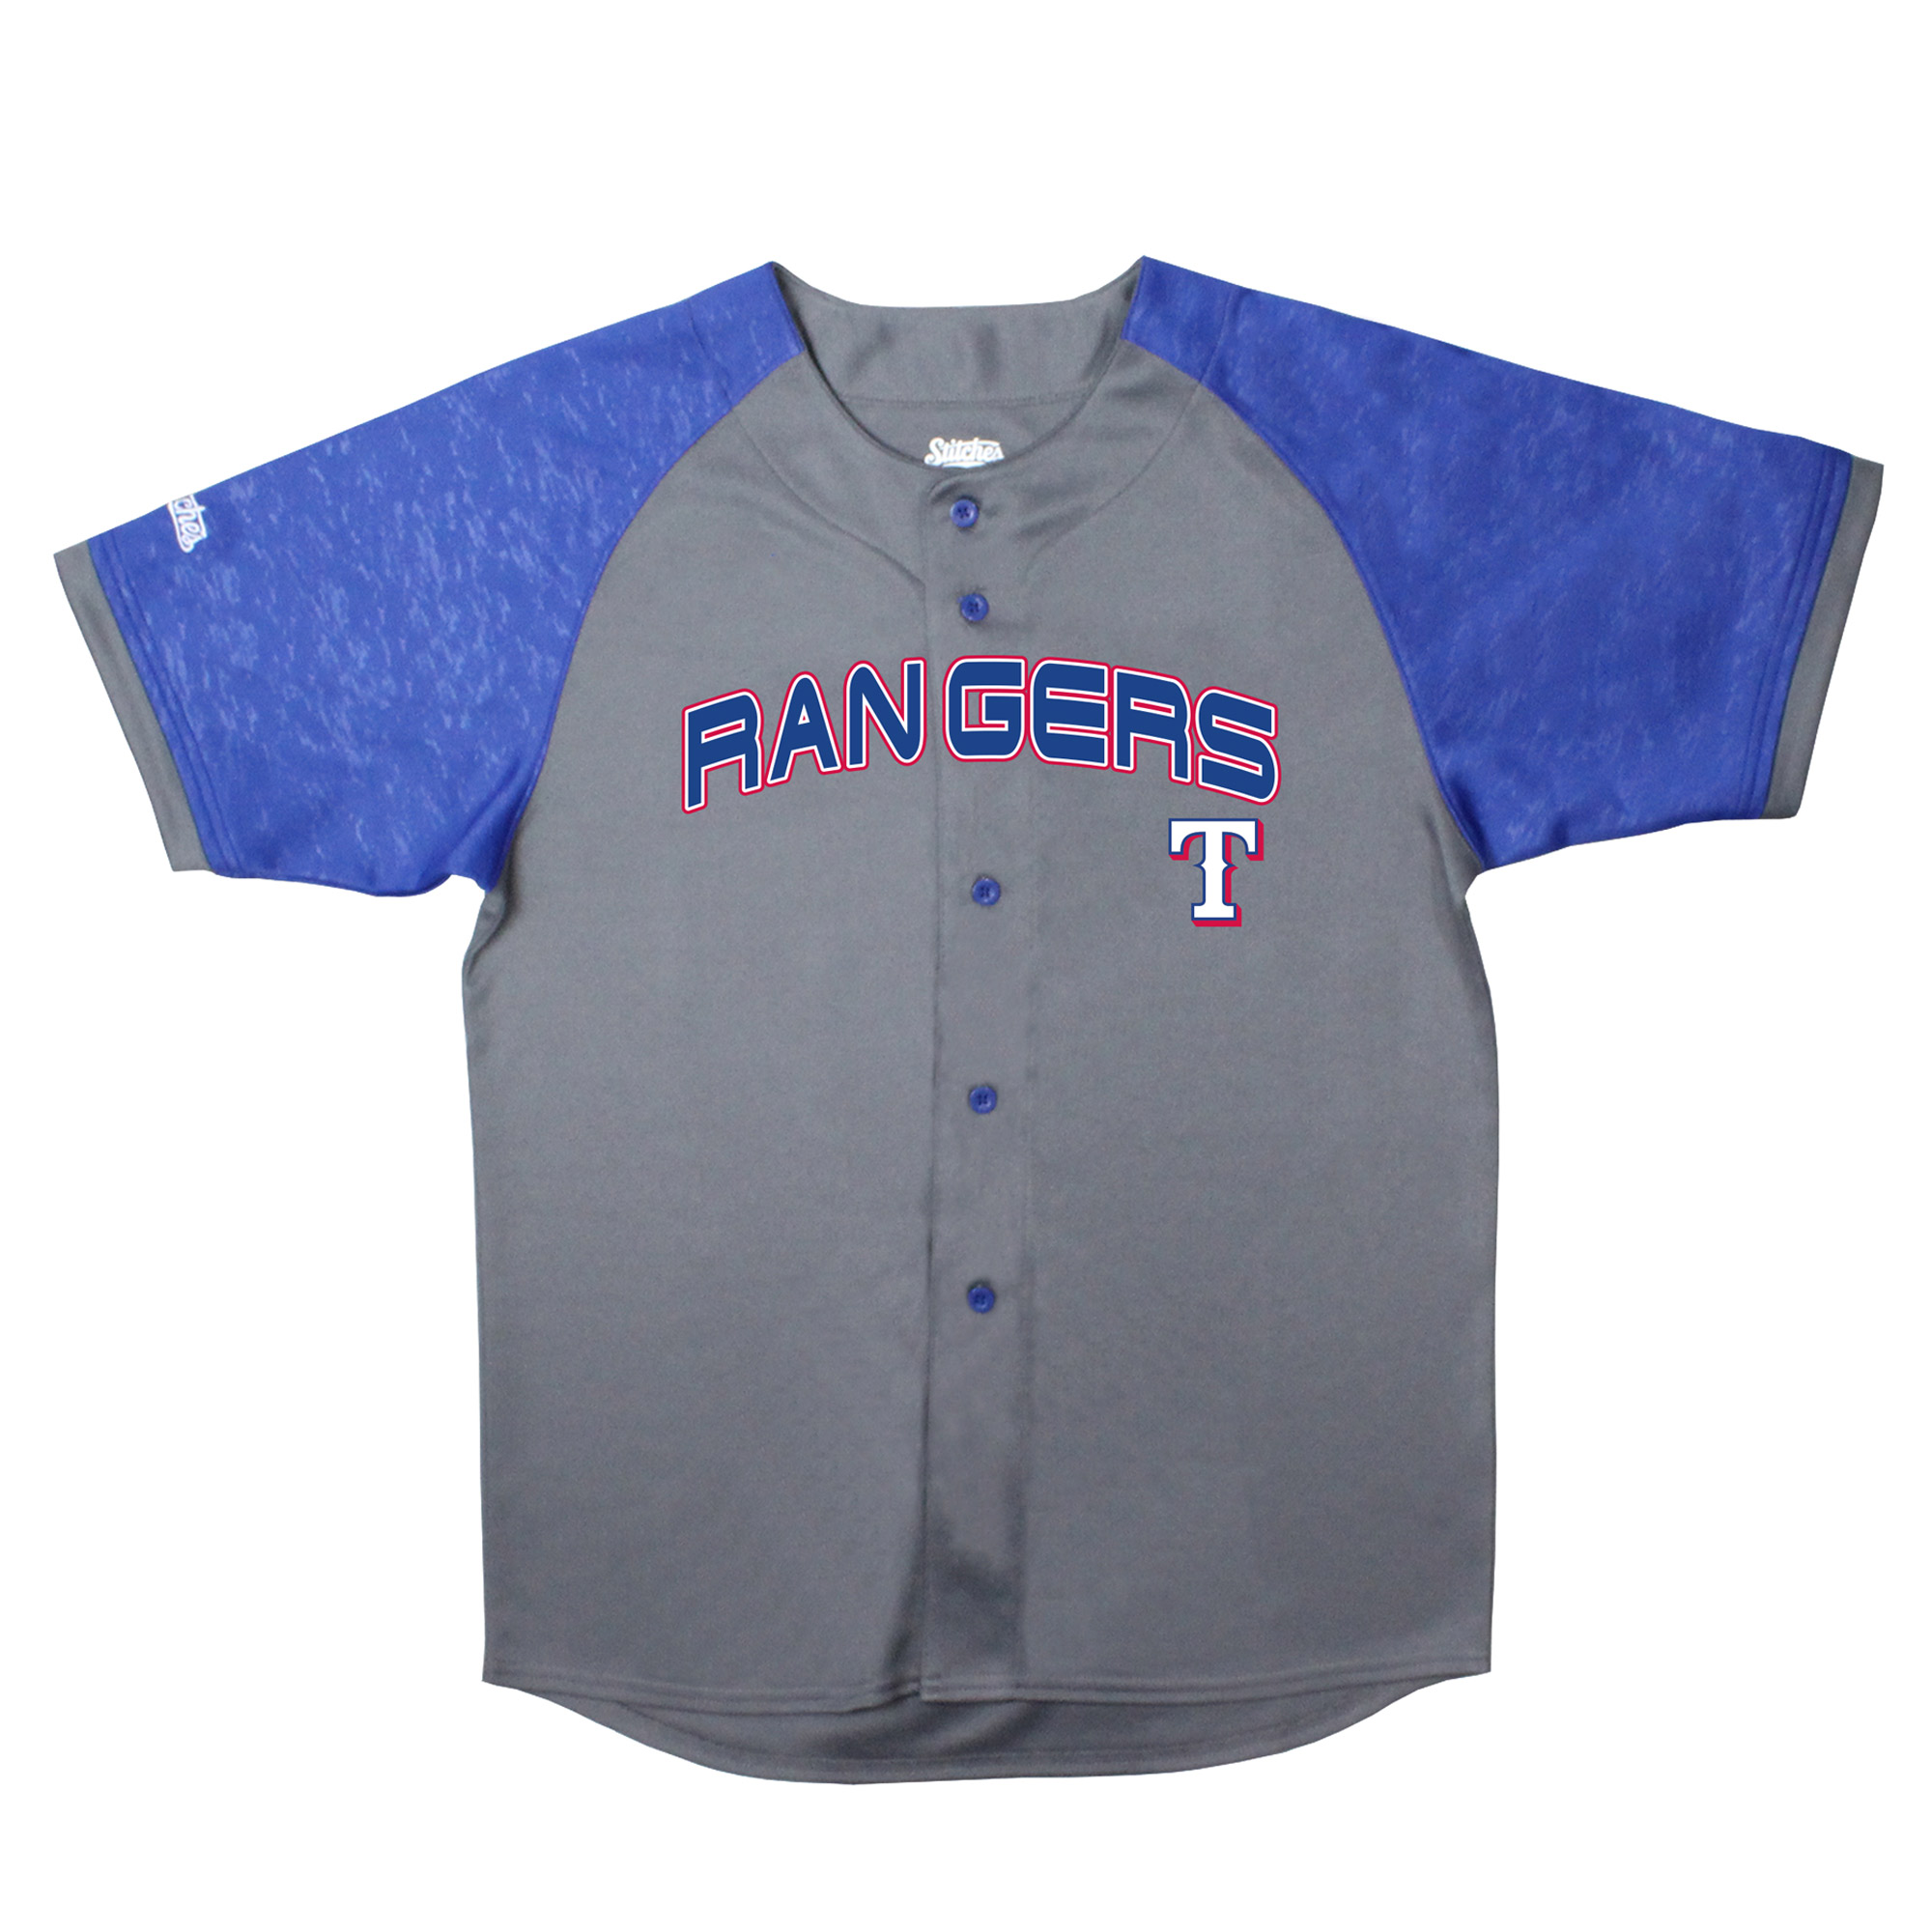 Texas Rangers Stitches Youth Glitch Jersey - Charcoal/Royal